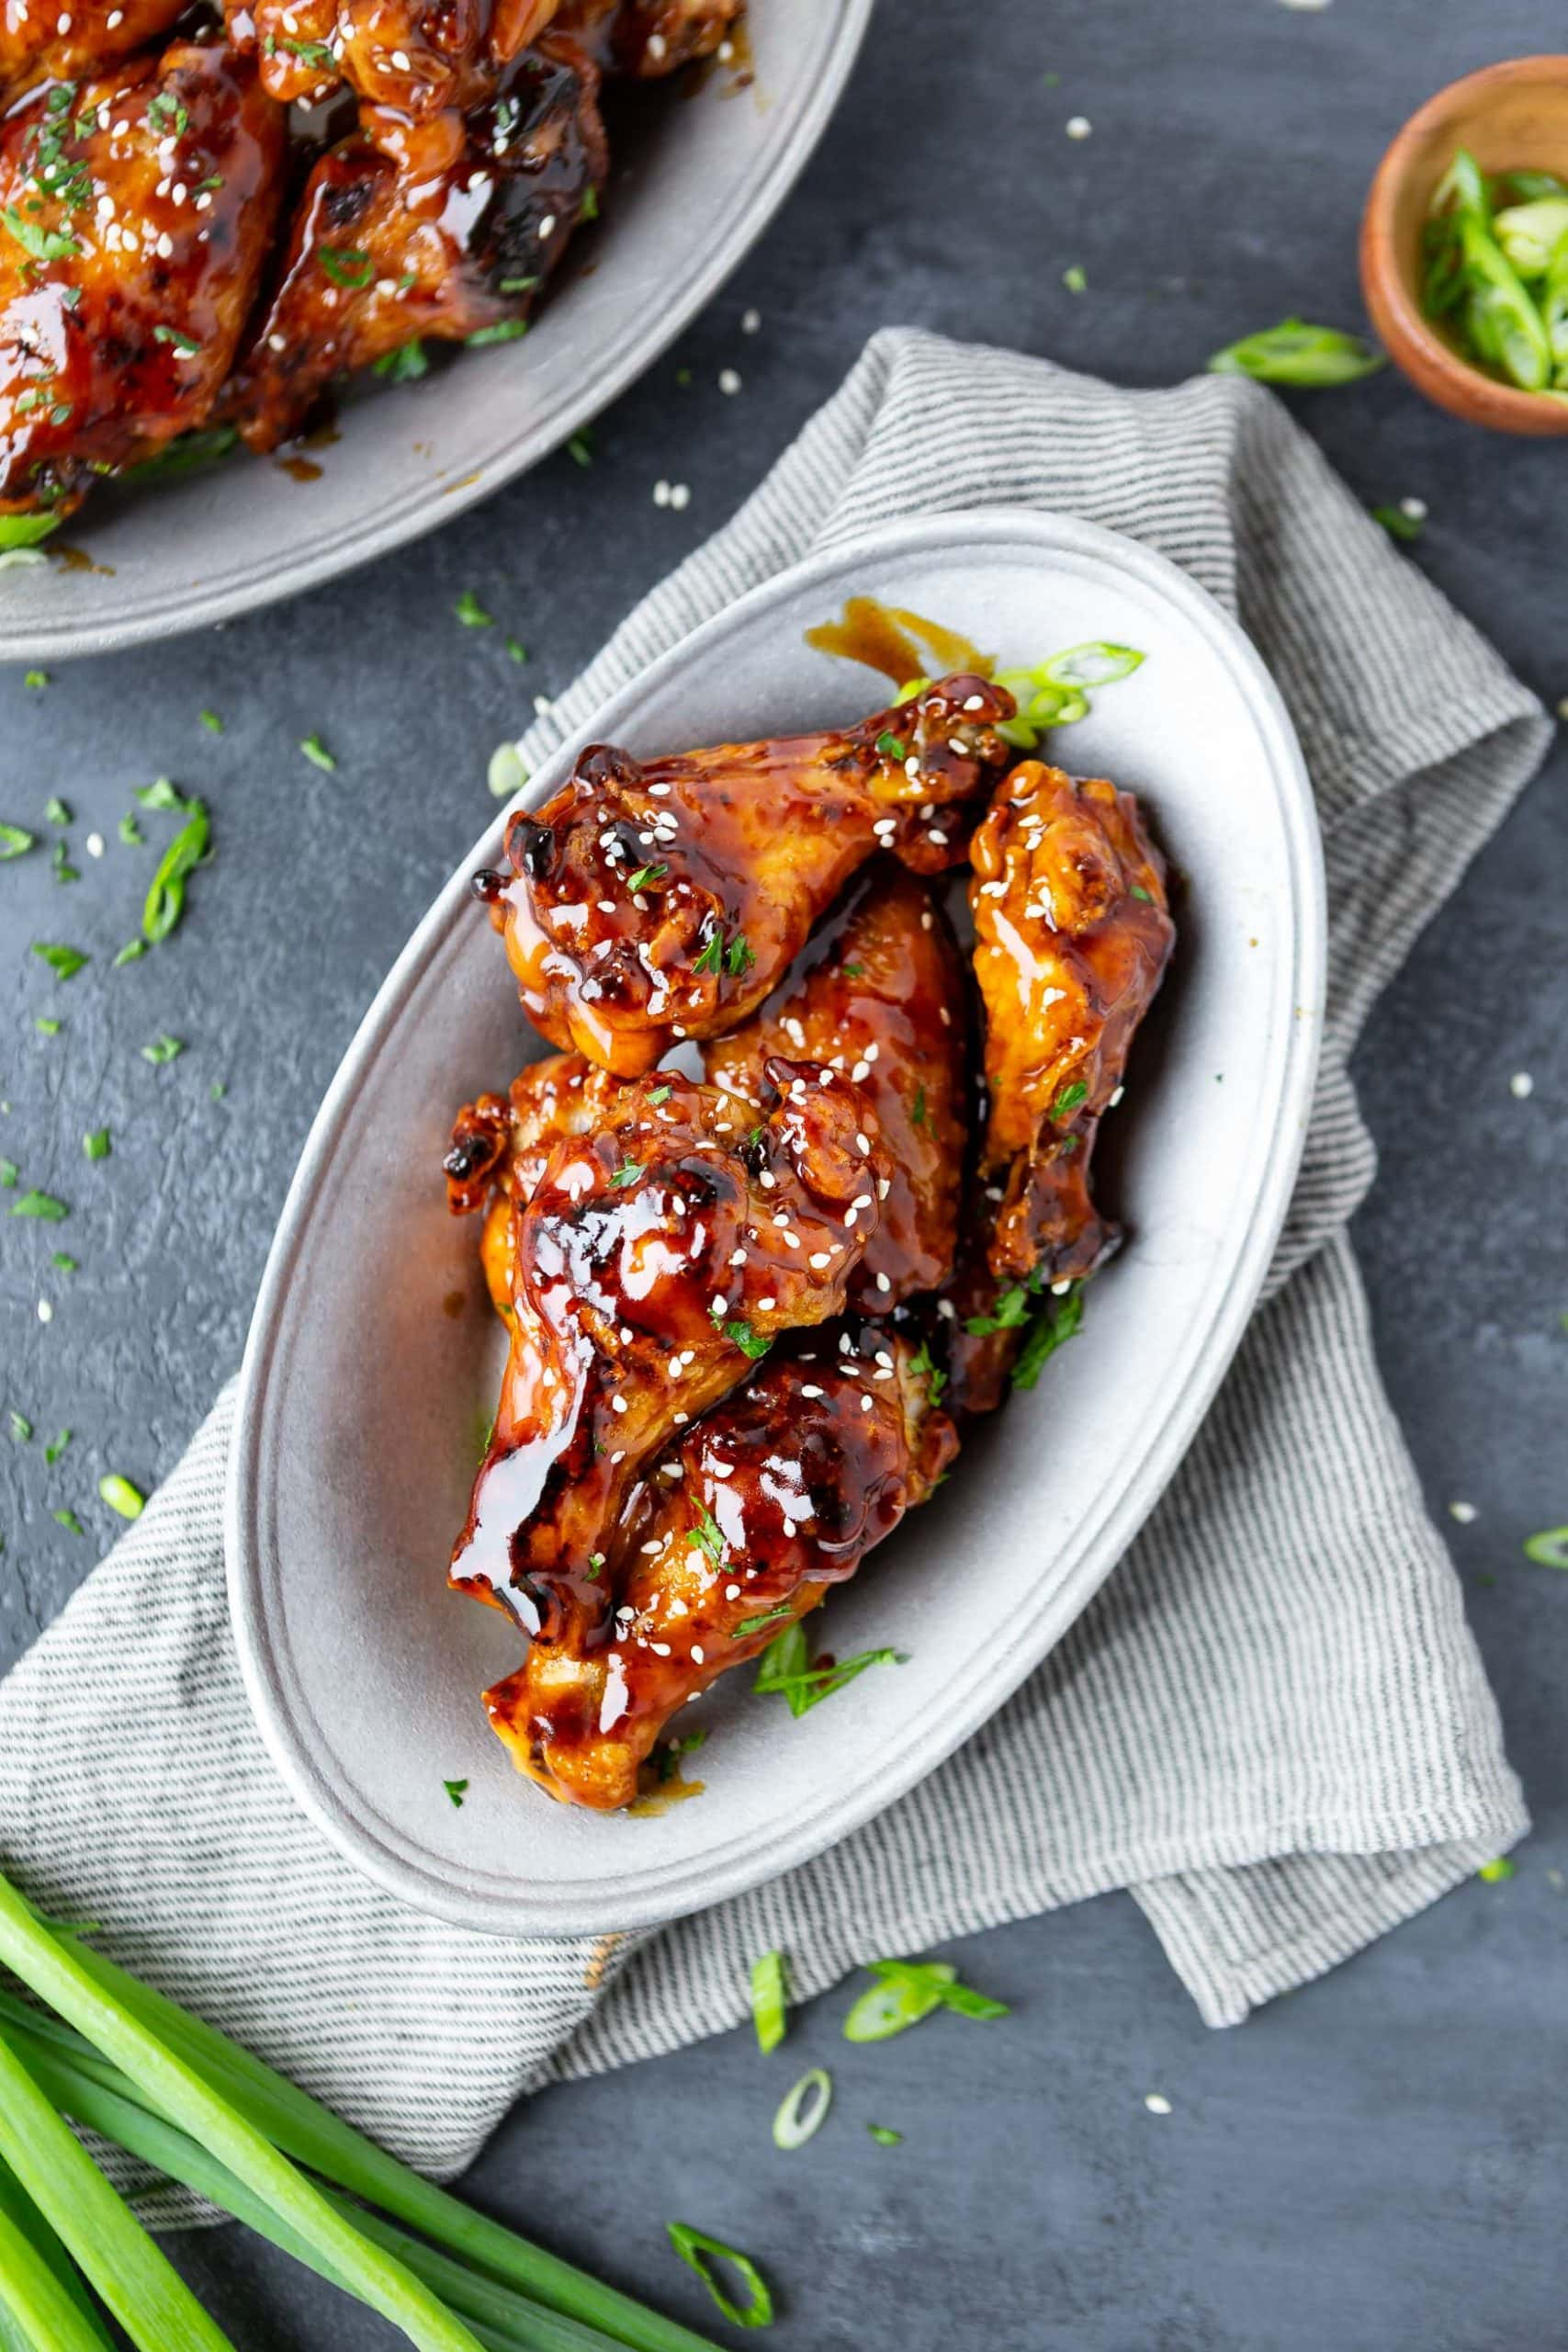 a photo taken from above of several baked chicken wings coated in teriyaki sauce and topped with sprinkled sesame seeds on a large white platter